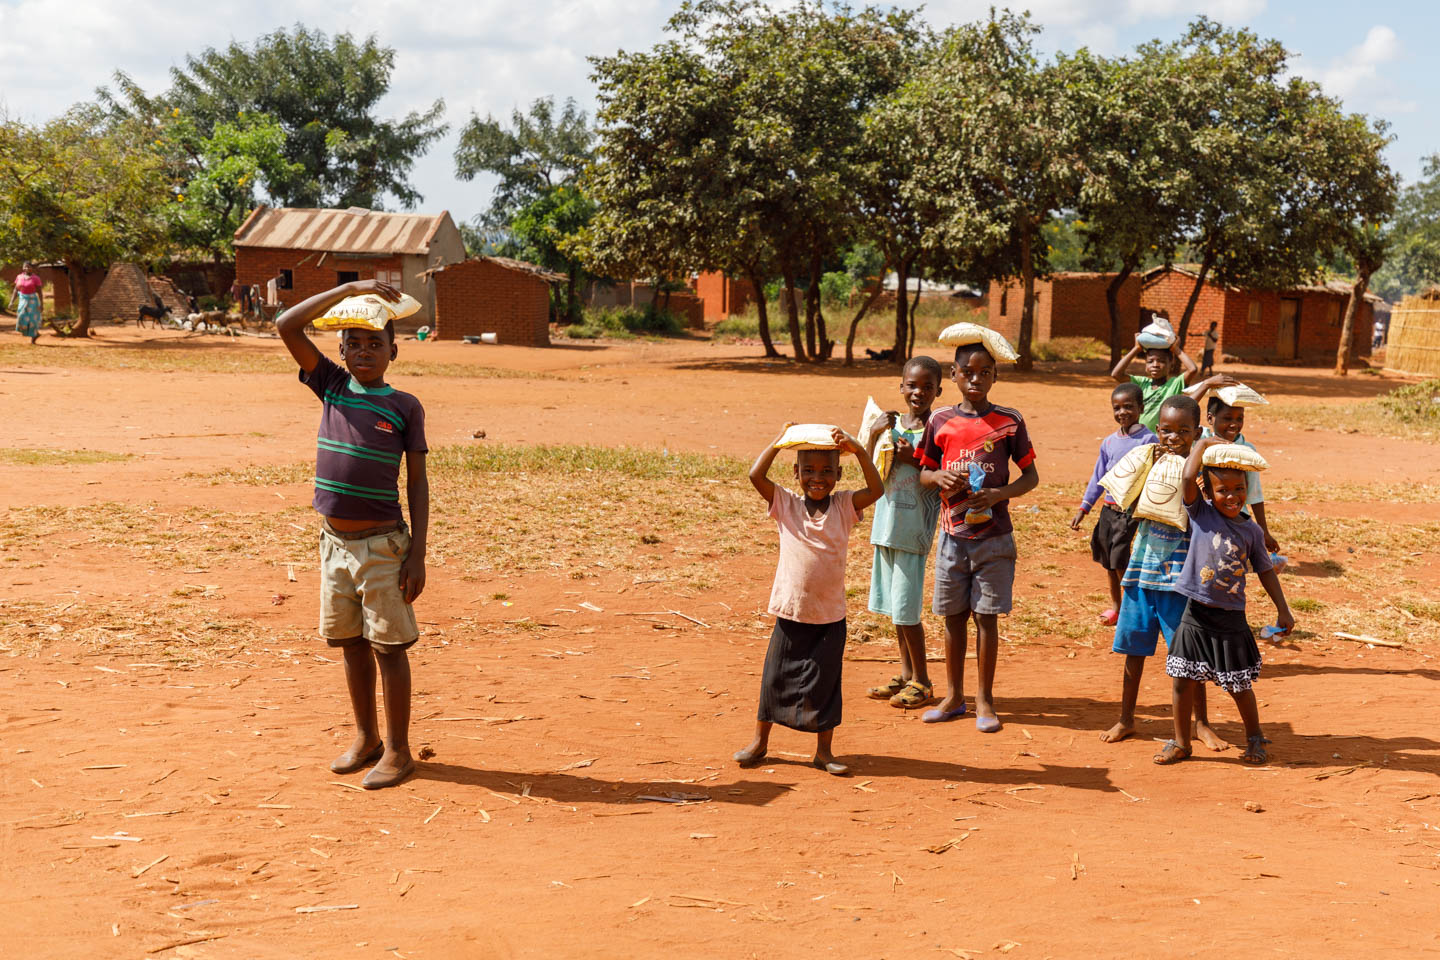 Malawian kids walk home with their new bags of VitaMeal